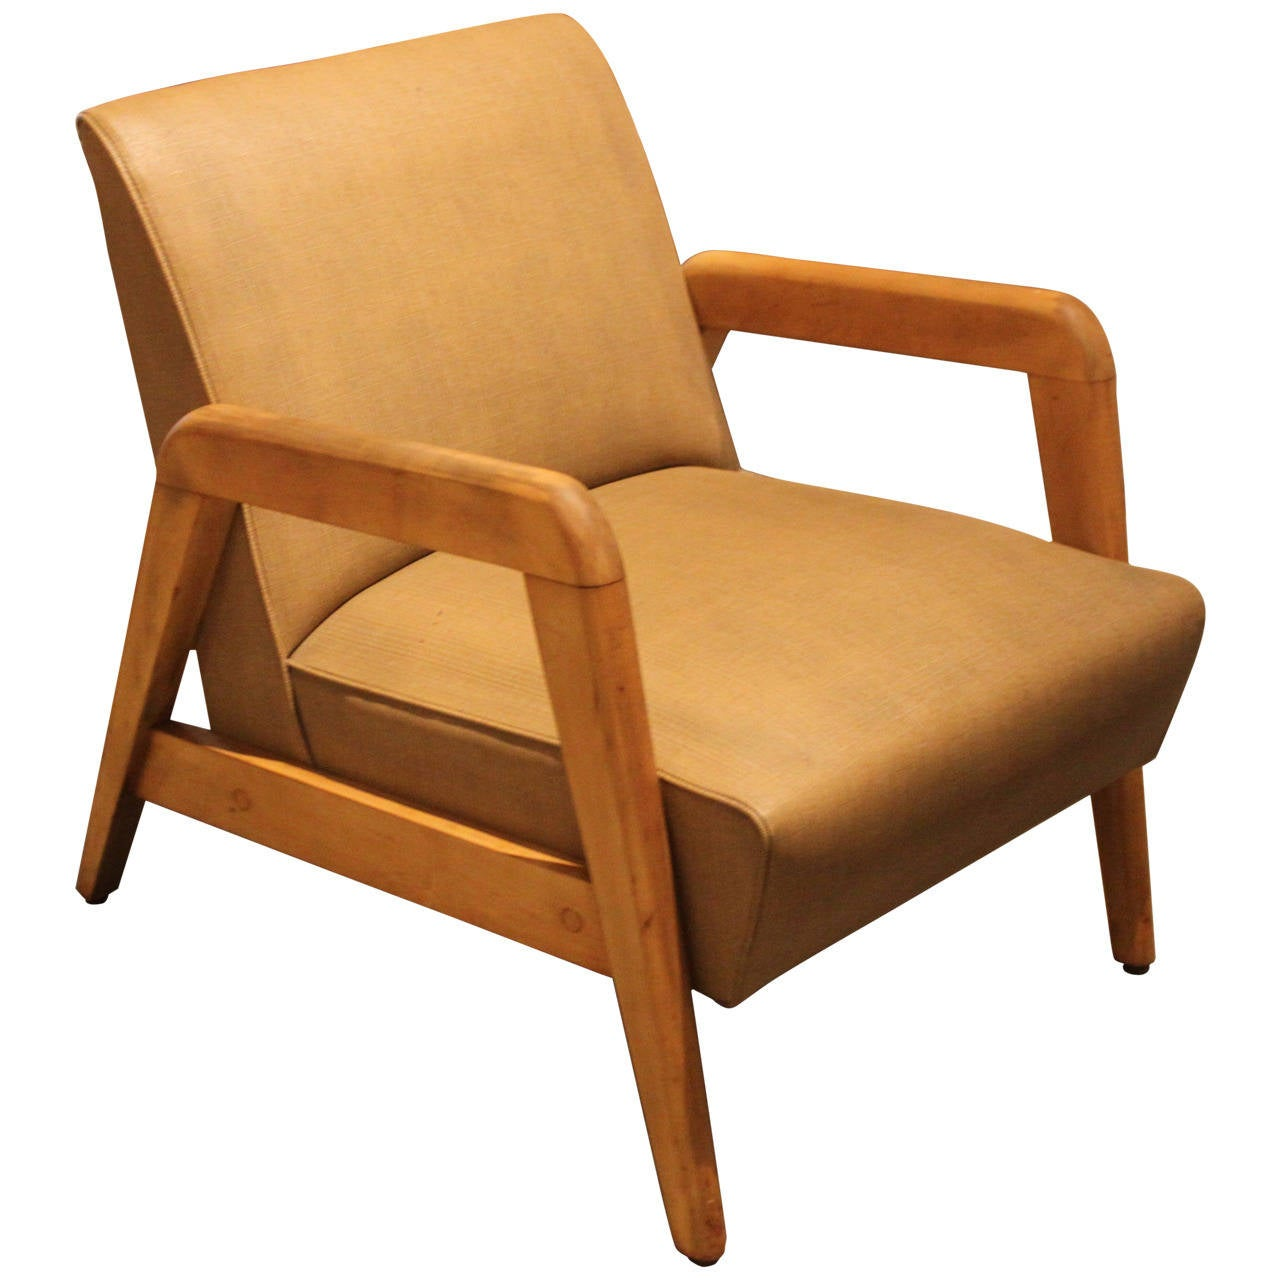 Modern Lounge Chairs Mid Century Modern Lounge Chair At 1stdibs